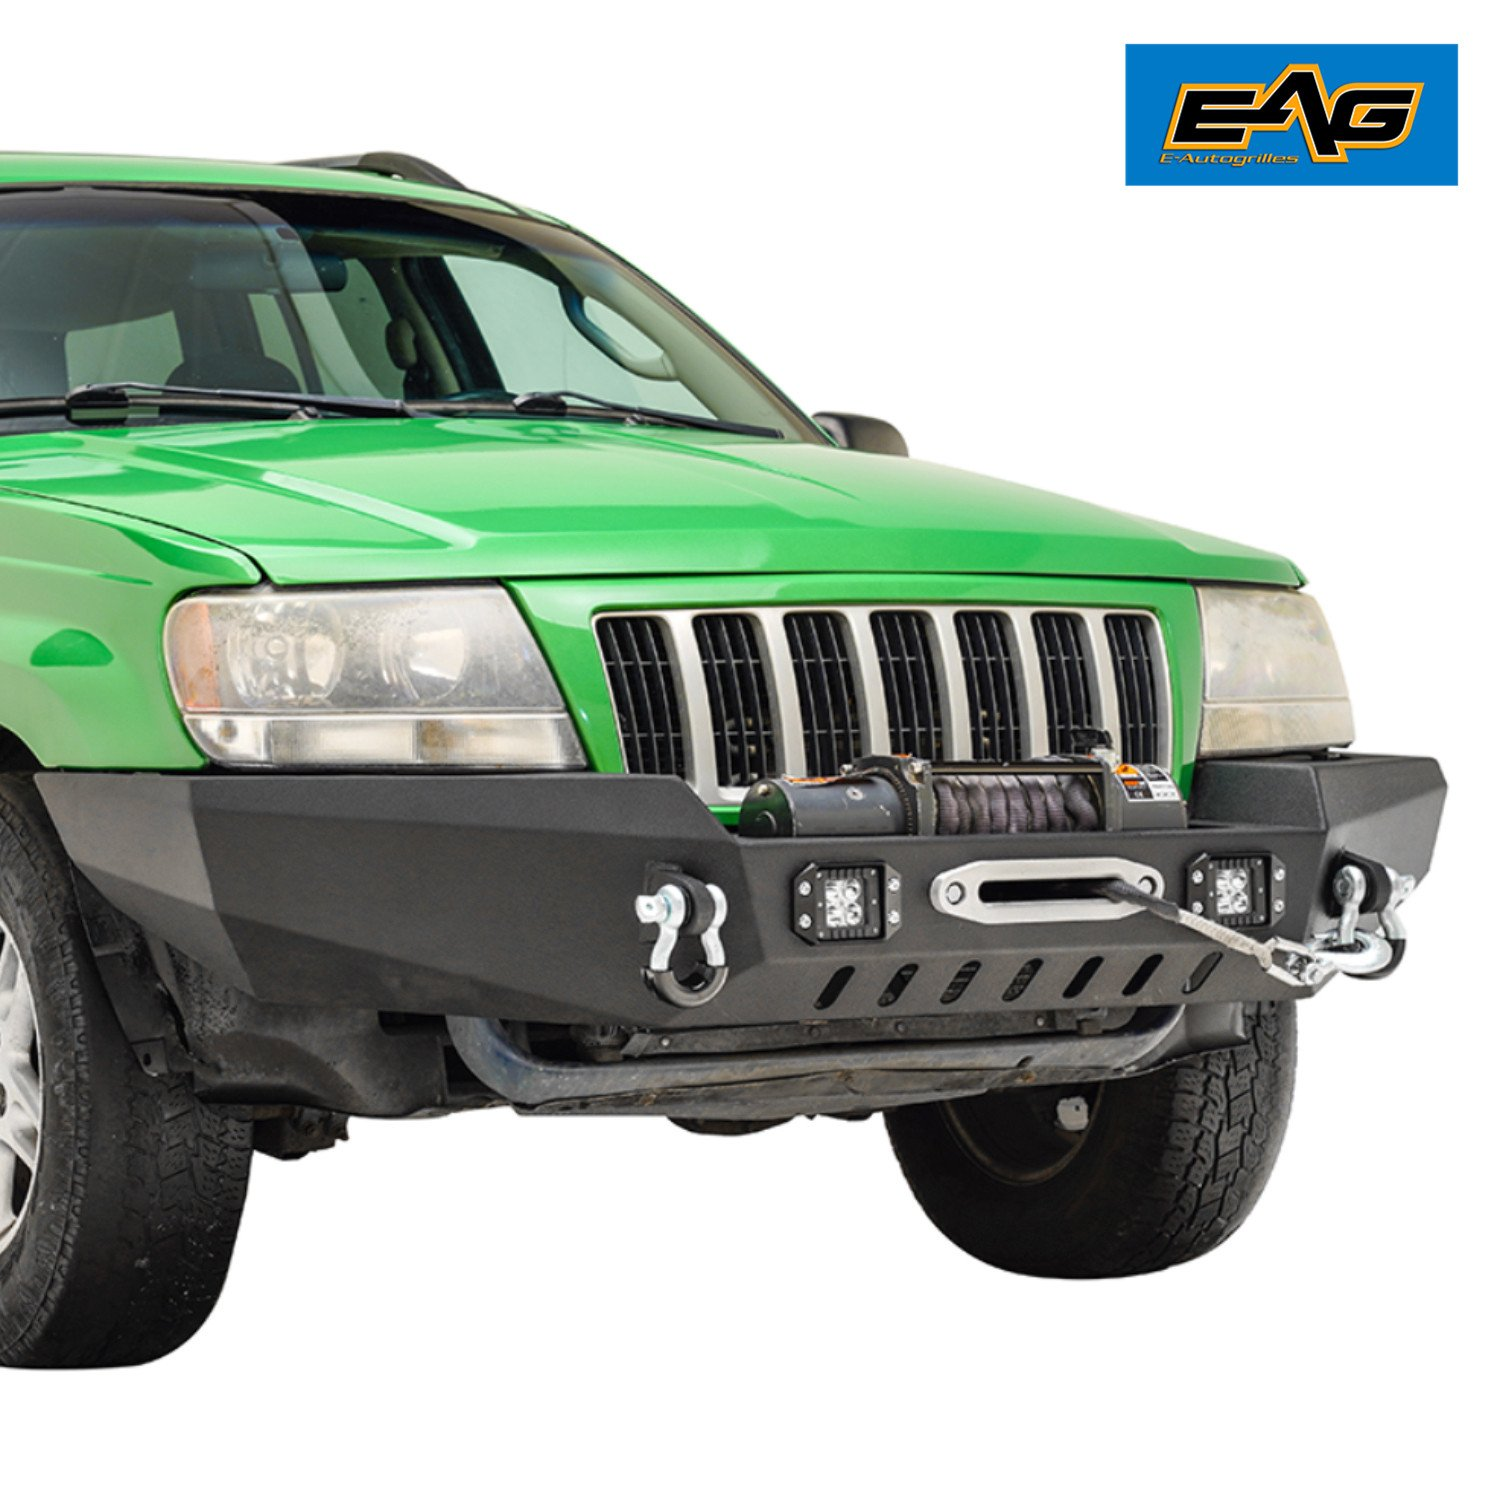 Eag Off Road Front Bumper With Led Lights For 99 04 Jeep 1999 Grand Cherokee Will Not Start Wj Automotive